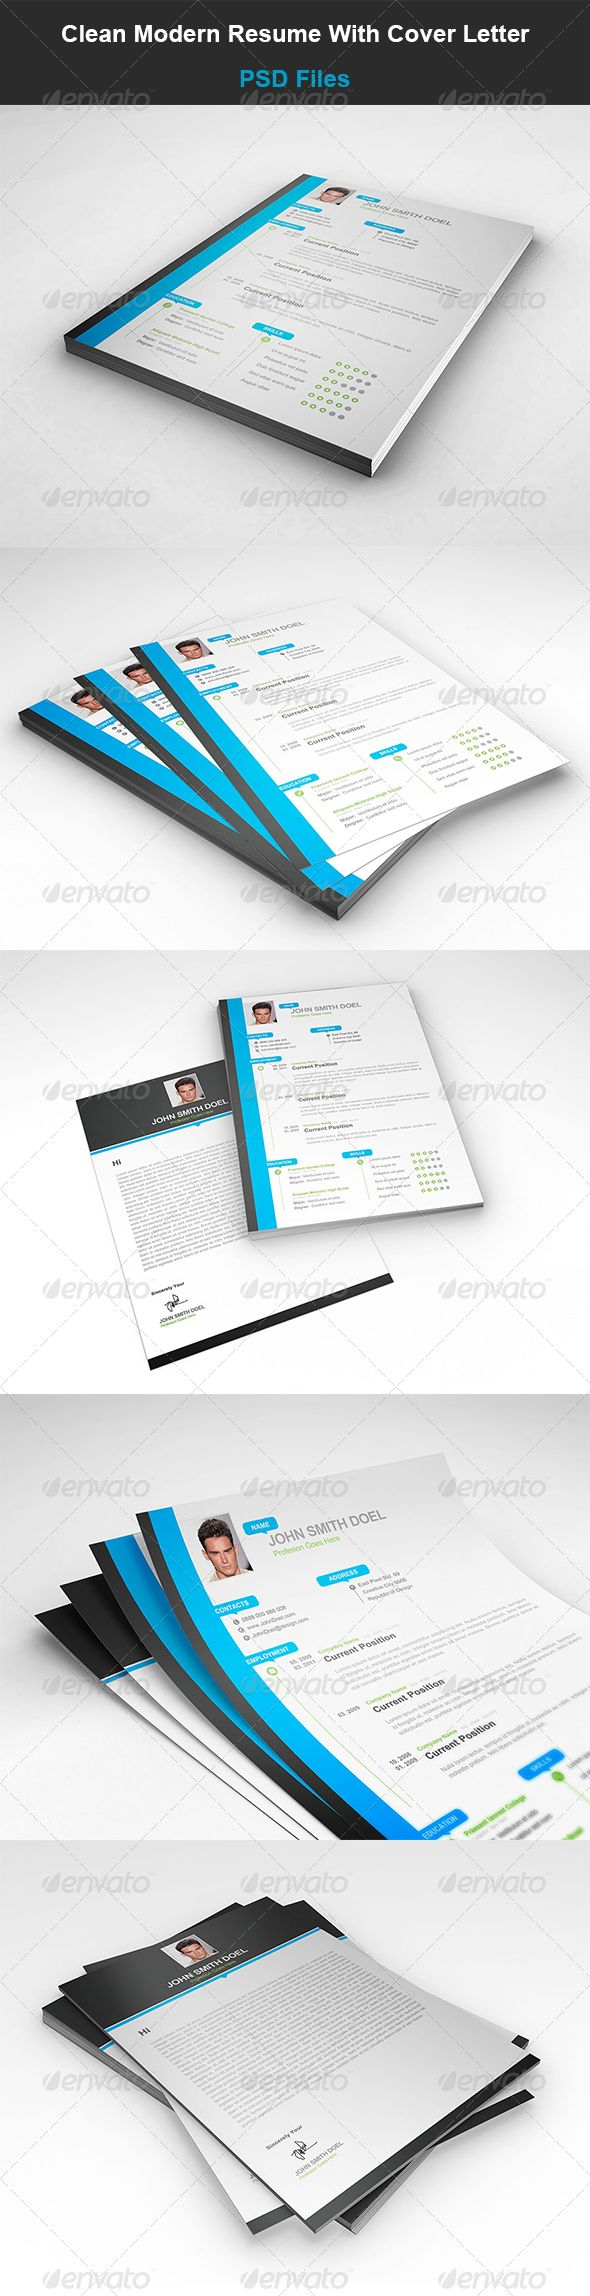 sample cover letters for resumes%0A Clean Modern Resume With Cover Letter